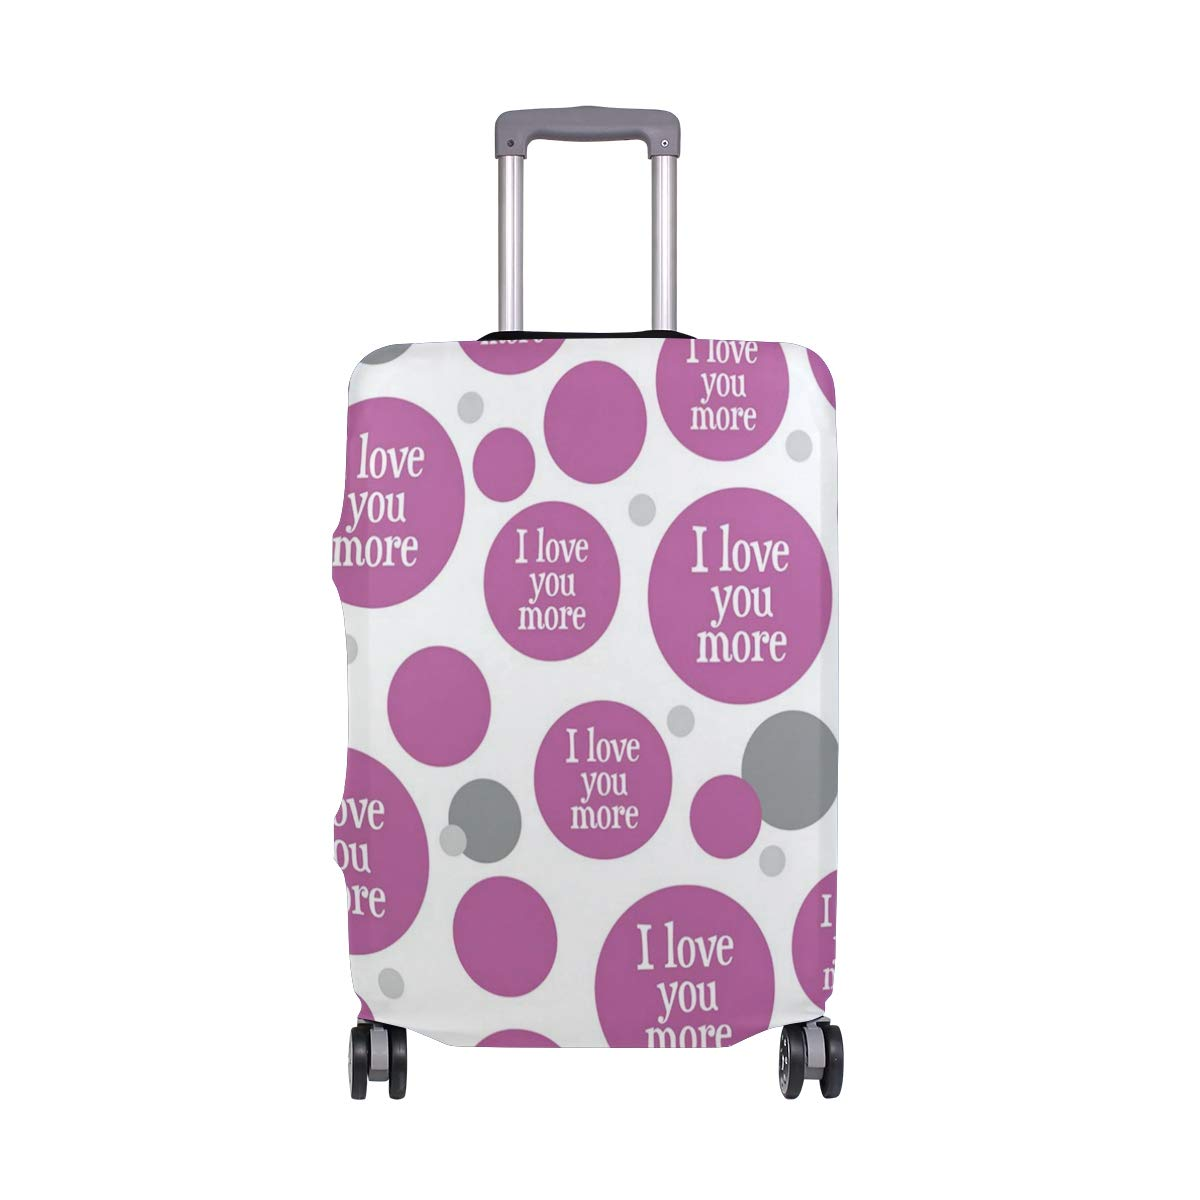 Travel Luggage Cover DIY Prints Protector Suitcase Baggage Fit 18-32 inch - I Love You More Purple